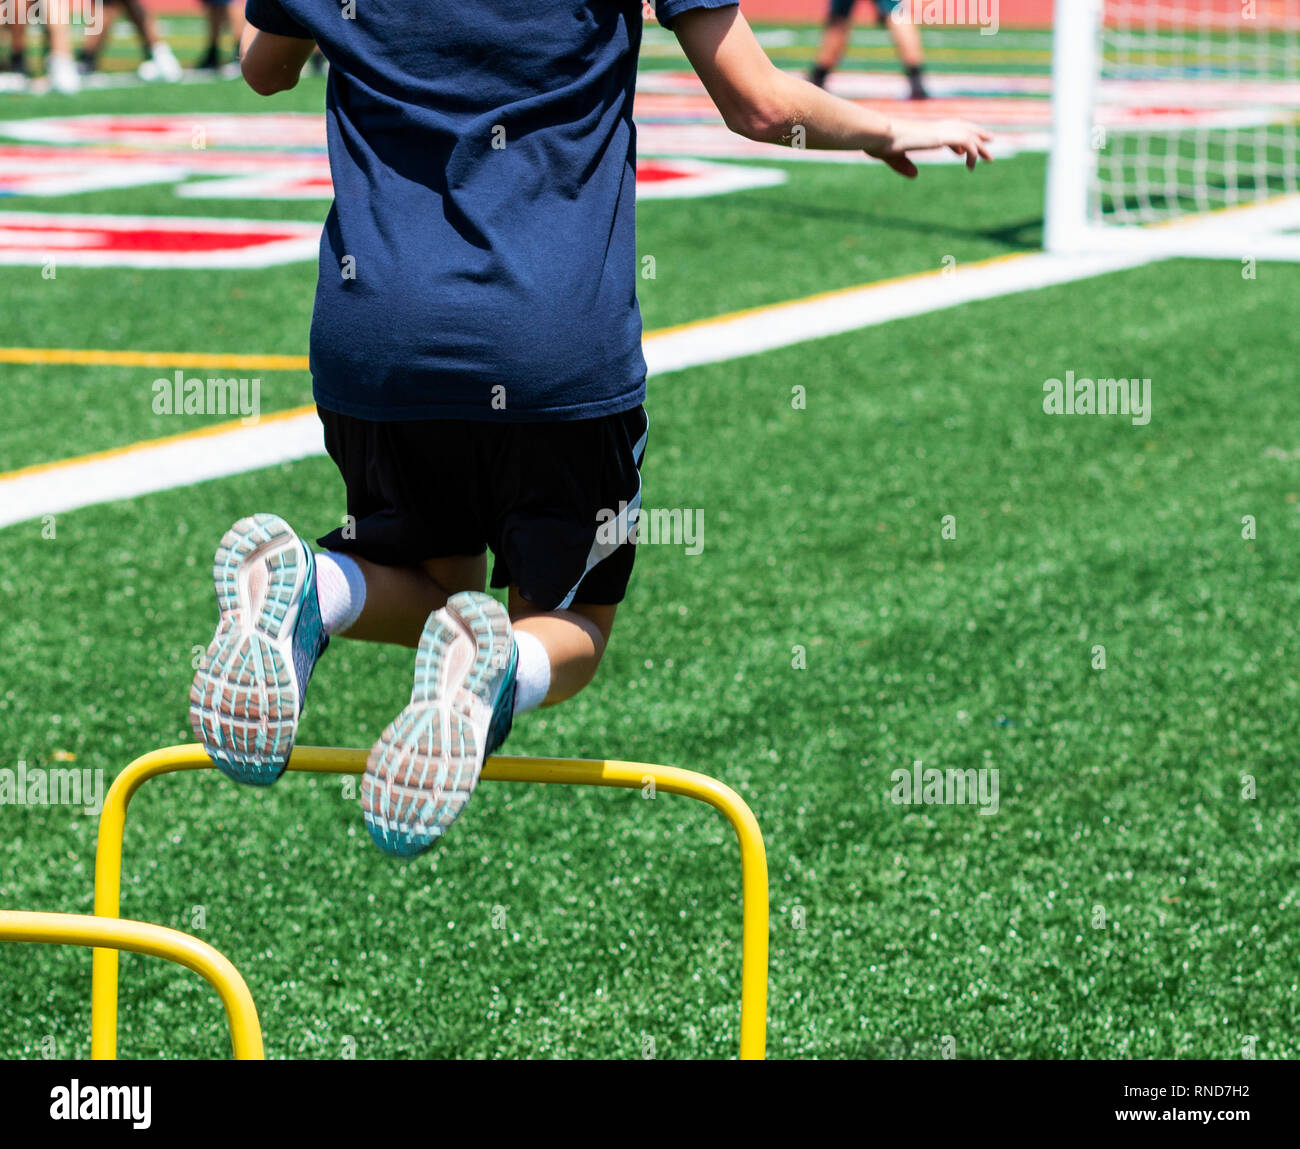 A young kid is jumping over tow foot high yellow mini hurdles at a track and speed camp on a green turf field over the summer. - Stock Image